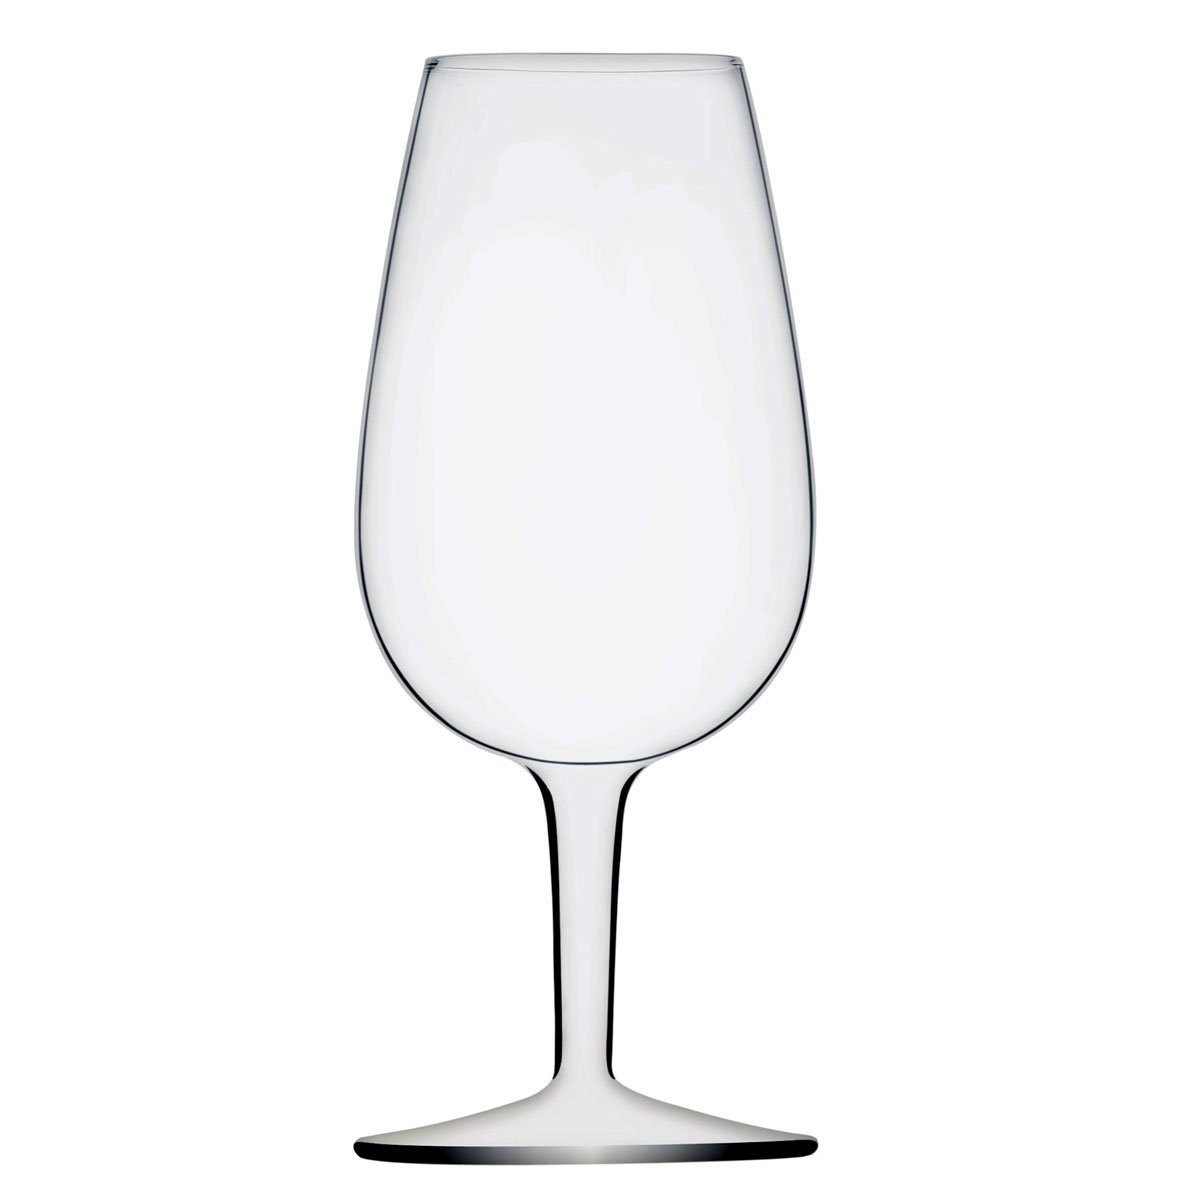 Luigi Bormioli I.S.O. Type Wine Tasting Glasses 21.5cl - Set of 6 ISO type Tasting Glasses Light & Music barware drinksware